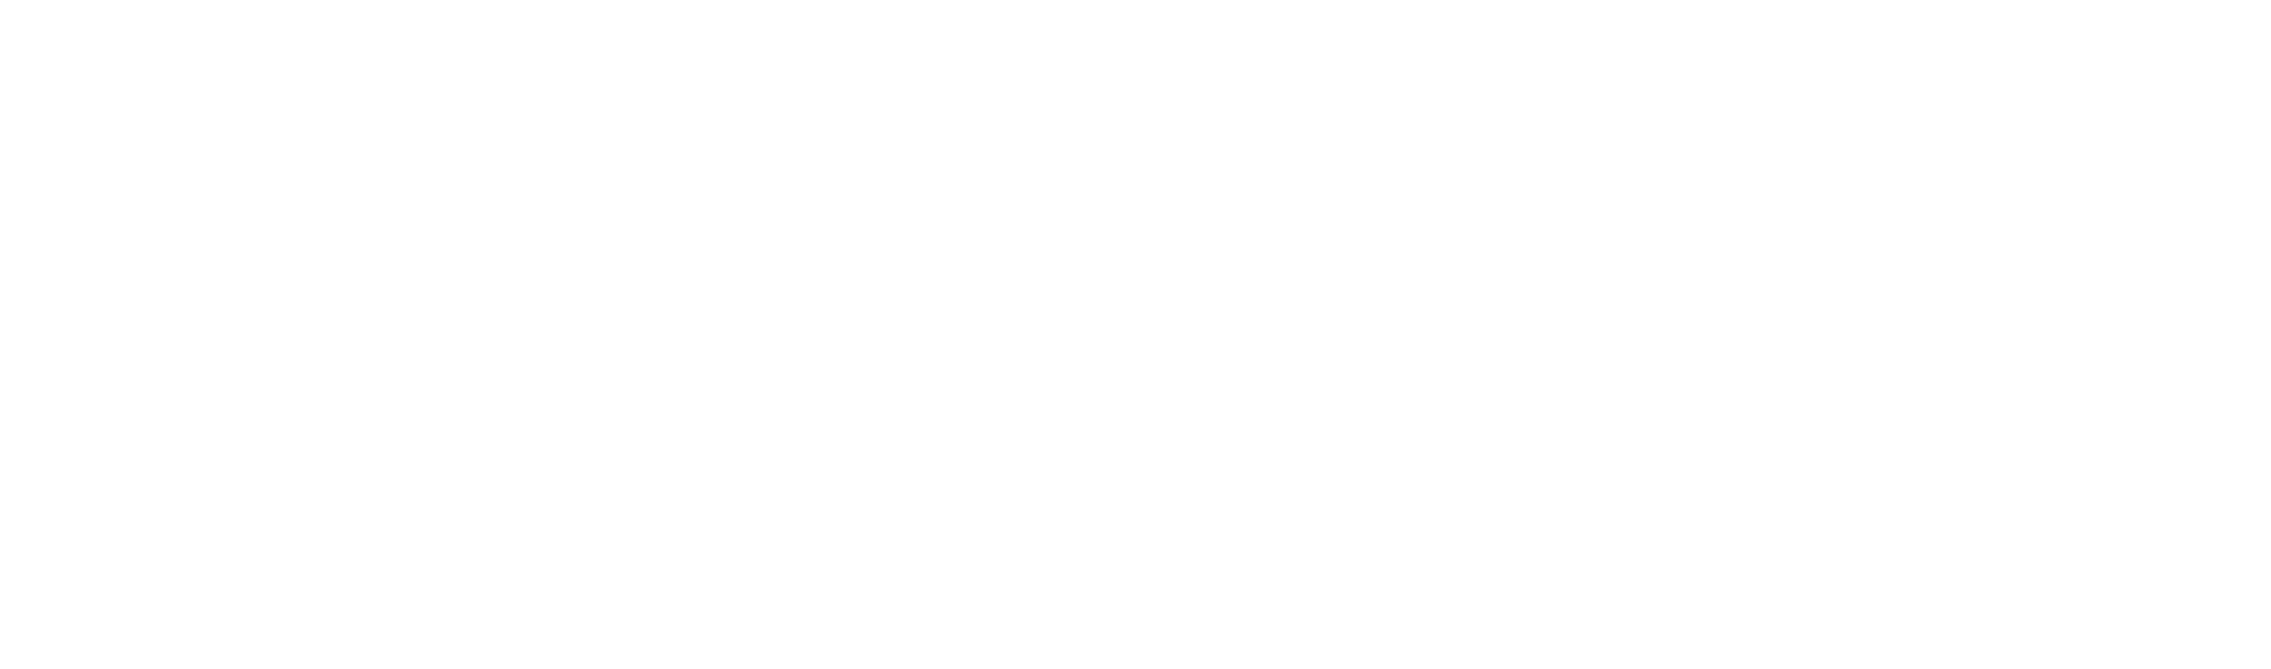 Arukah Institute of Healing